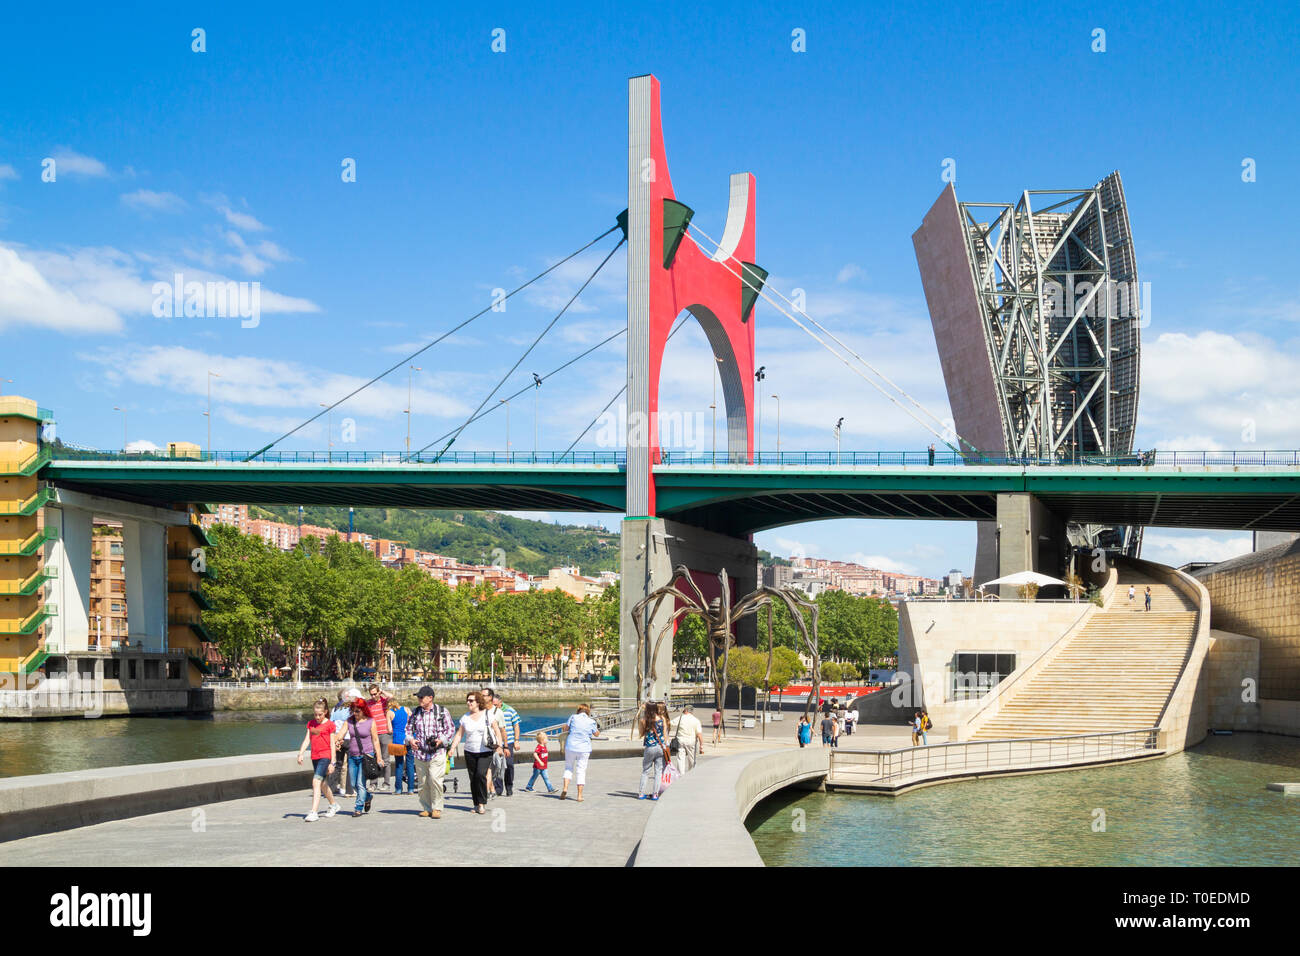 Tourists near spider sculpture 'Maman' by Louise Bourgeois under La Salve bridge outside Guggenheim museum in Bilbao, Spain. - Stock Image